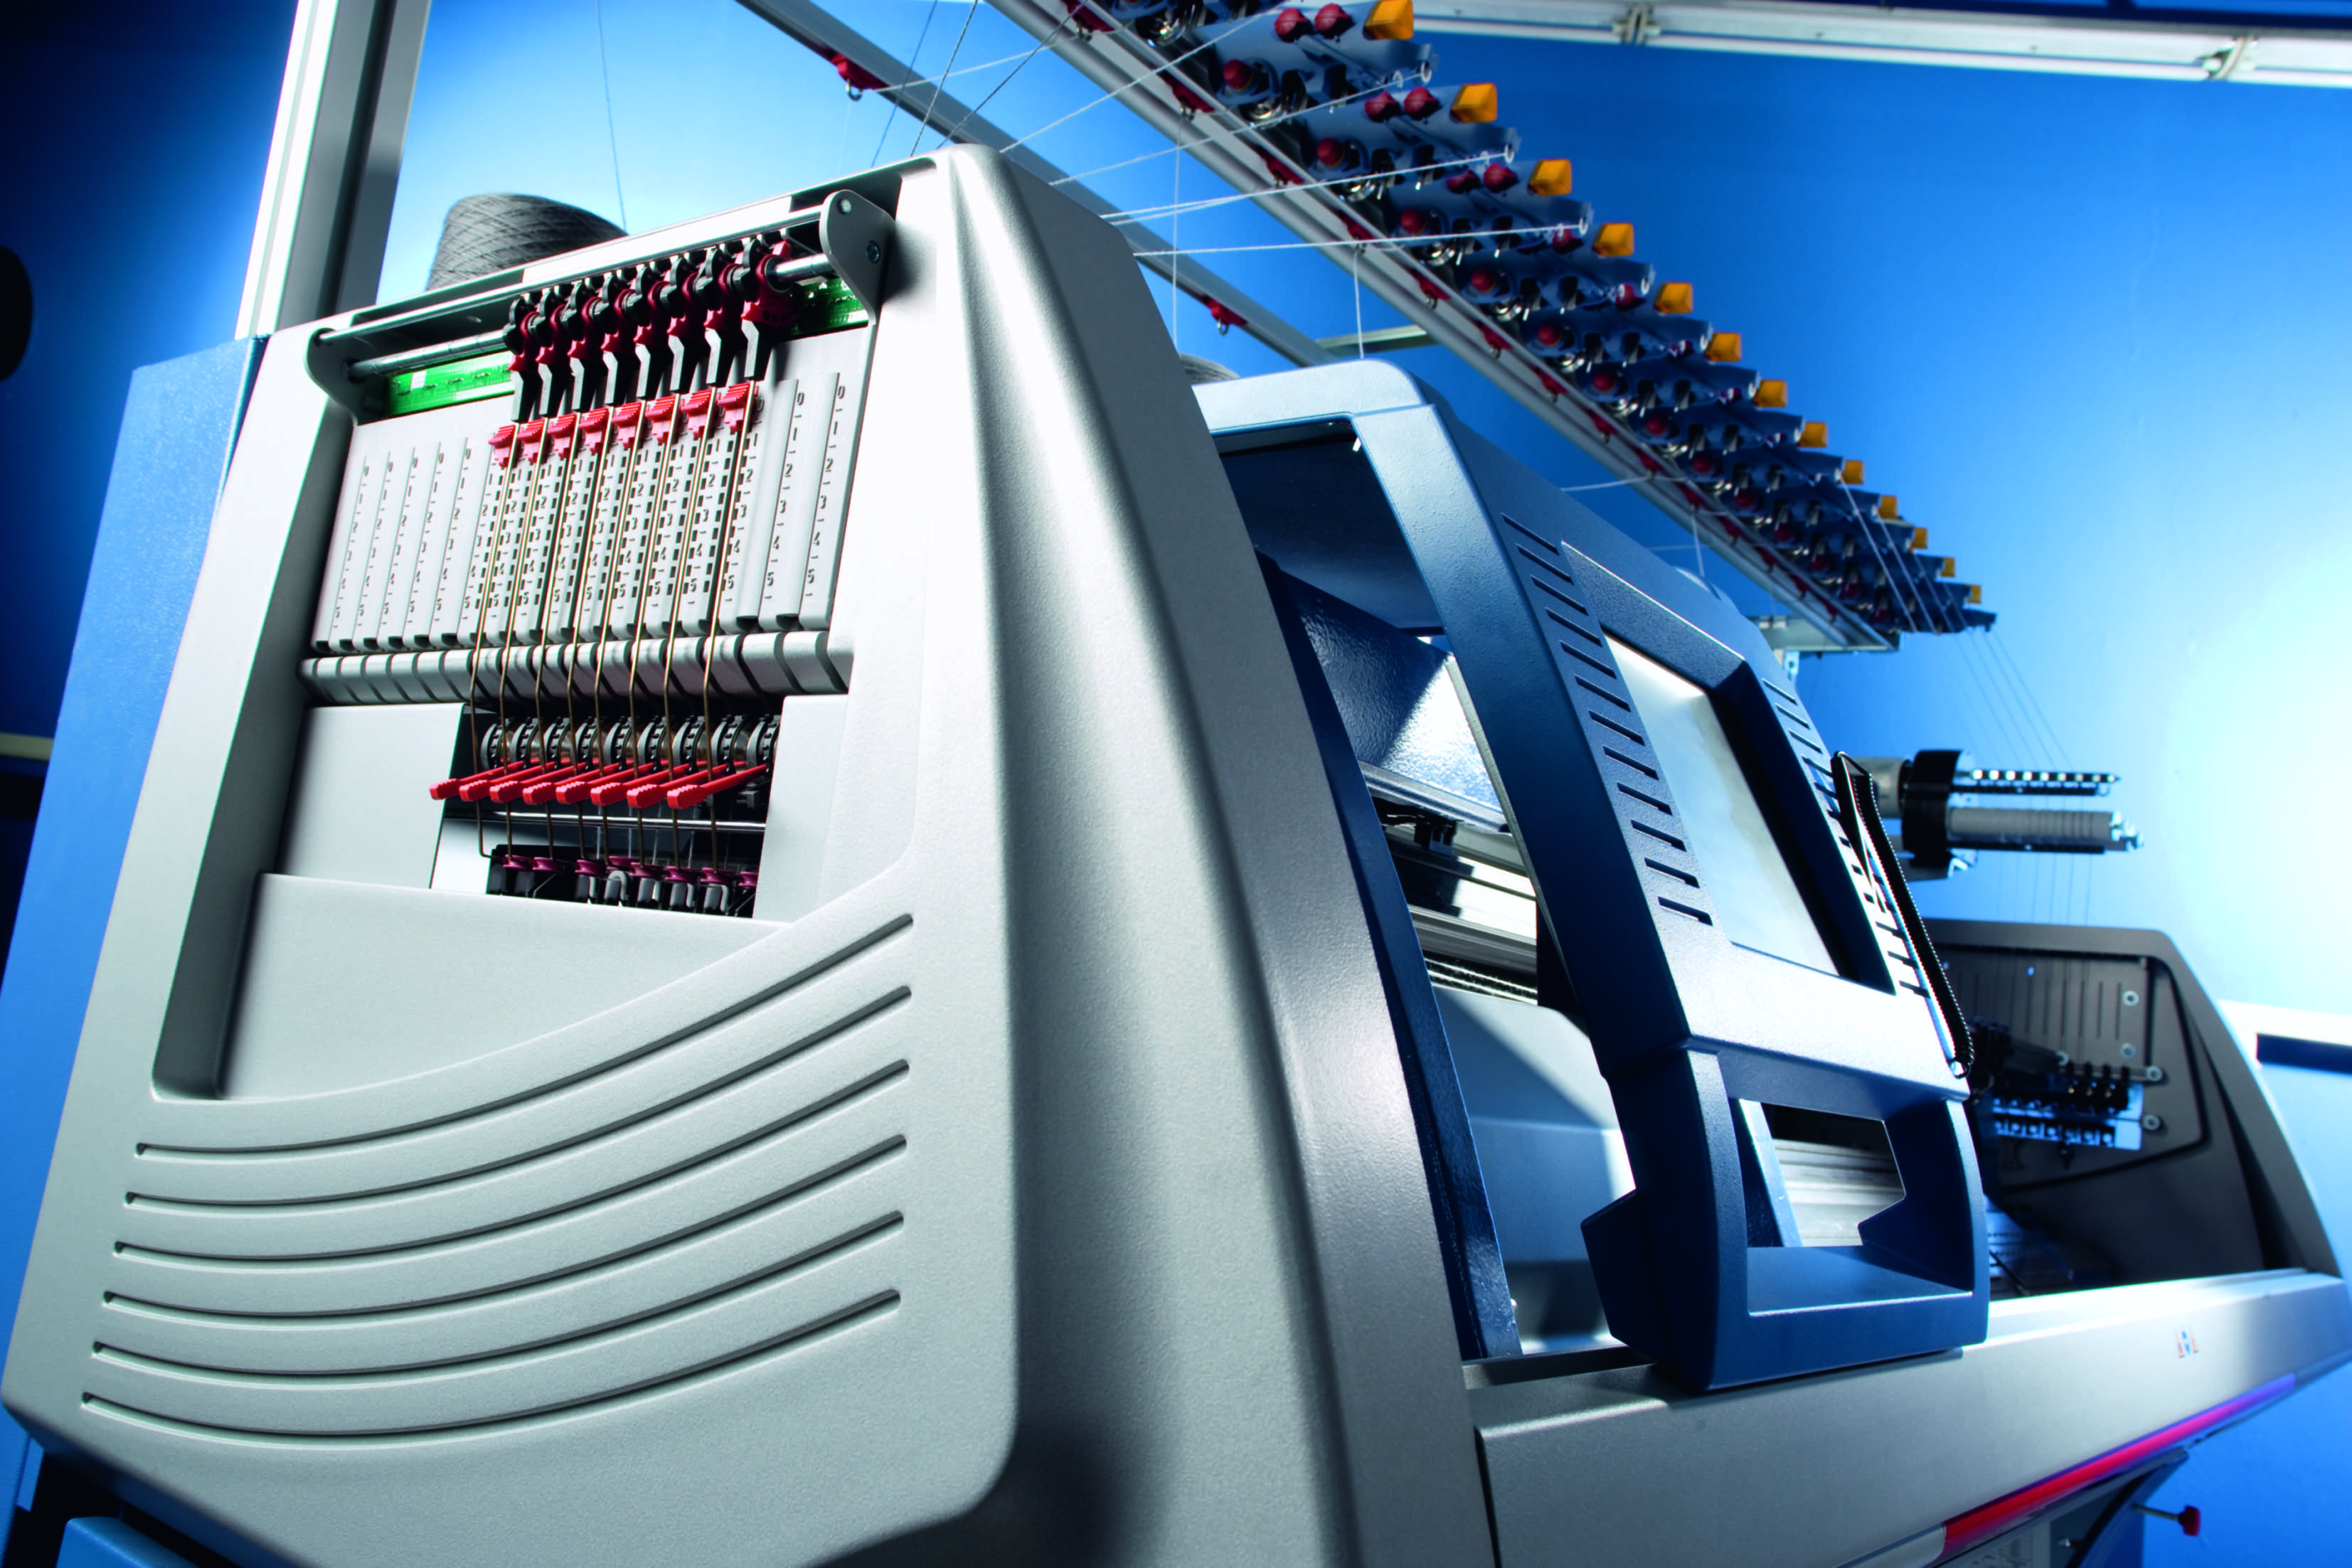 Stoll is a leading manufacturer of flat knitting machines. © Stoll